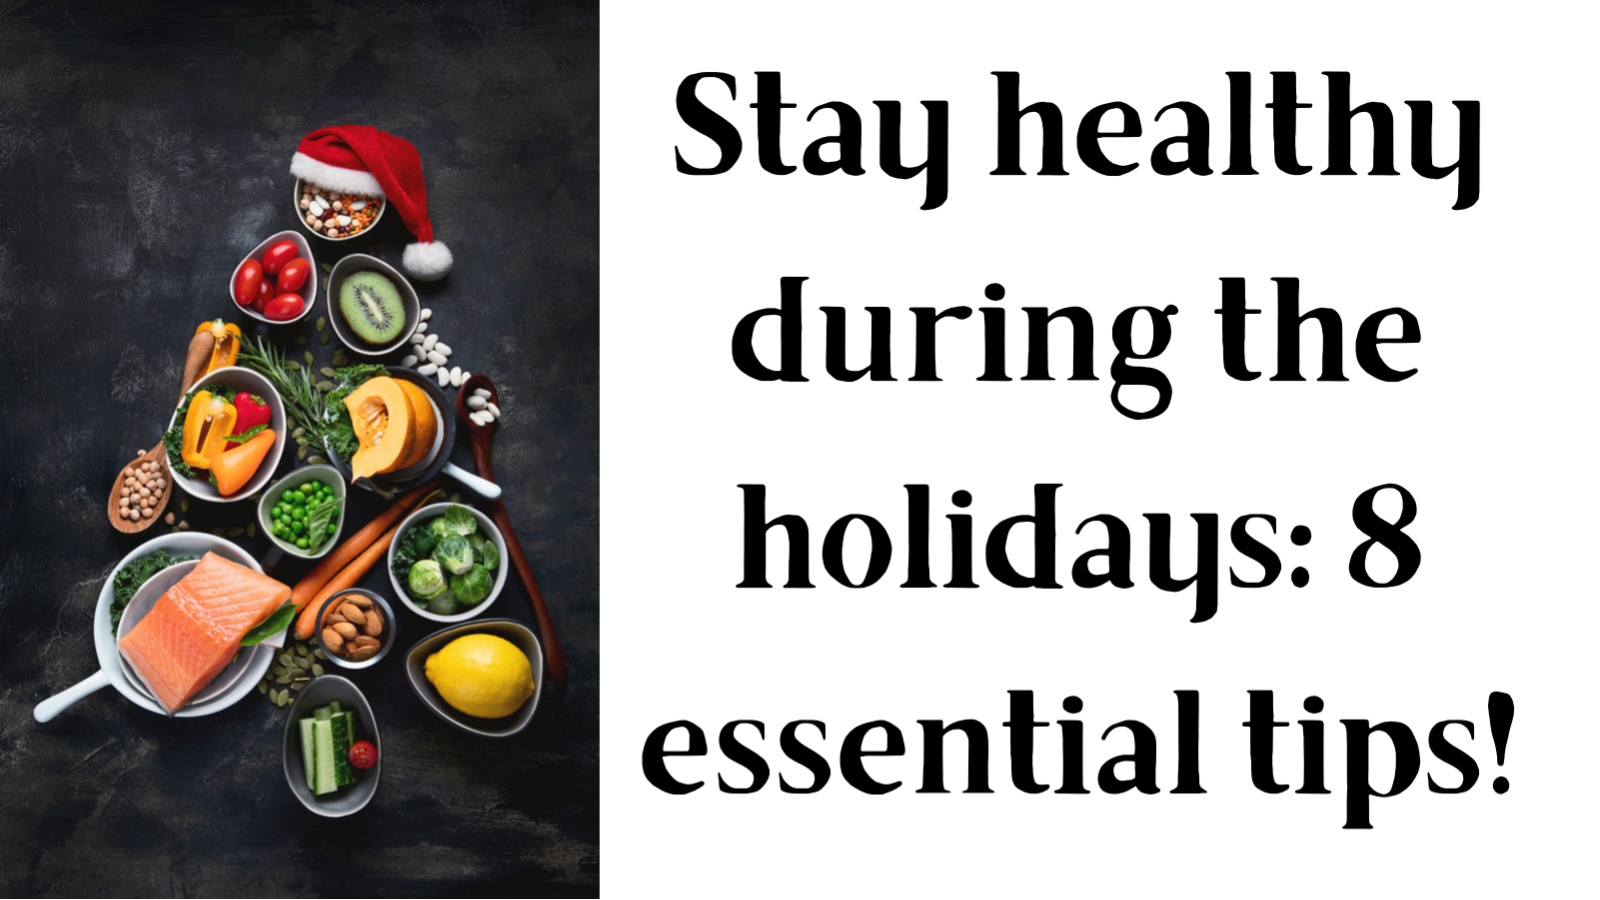 Stay healthy during the holidays: 8 essential tips!